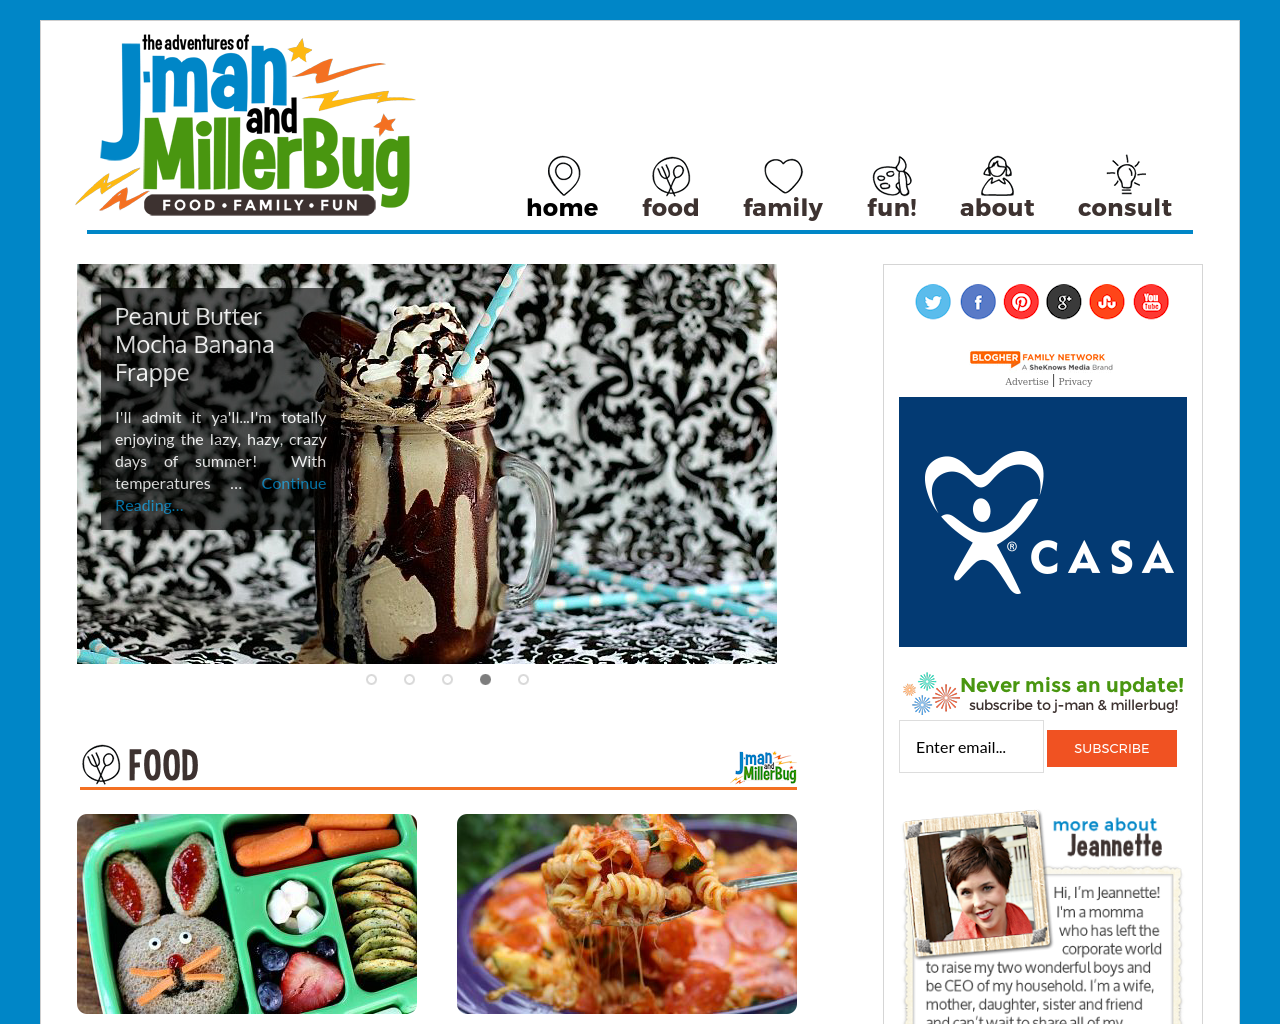 The-Adventures-Of-J-Man-And-MillerBug-Advertising-Reviews-Pricing